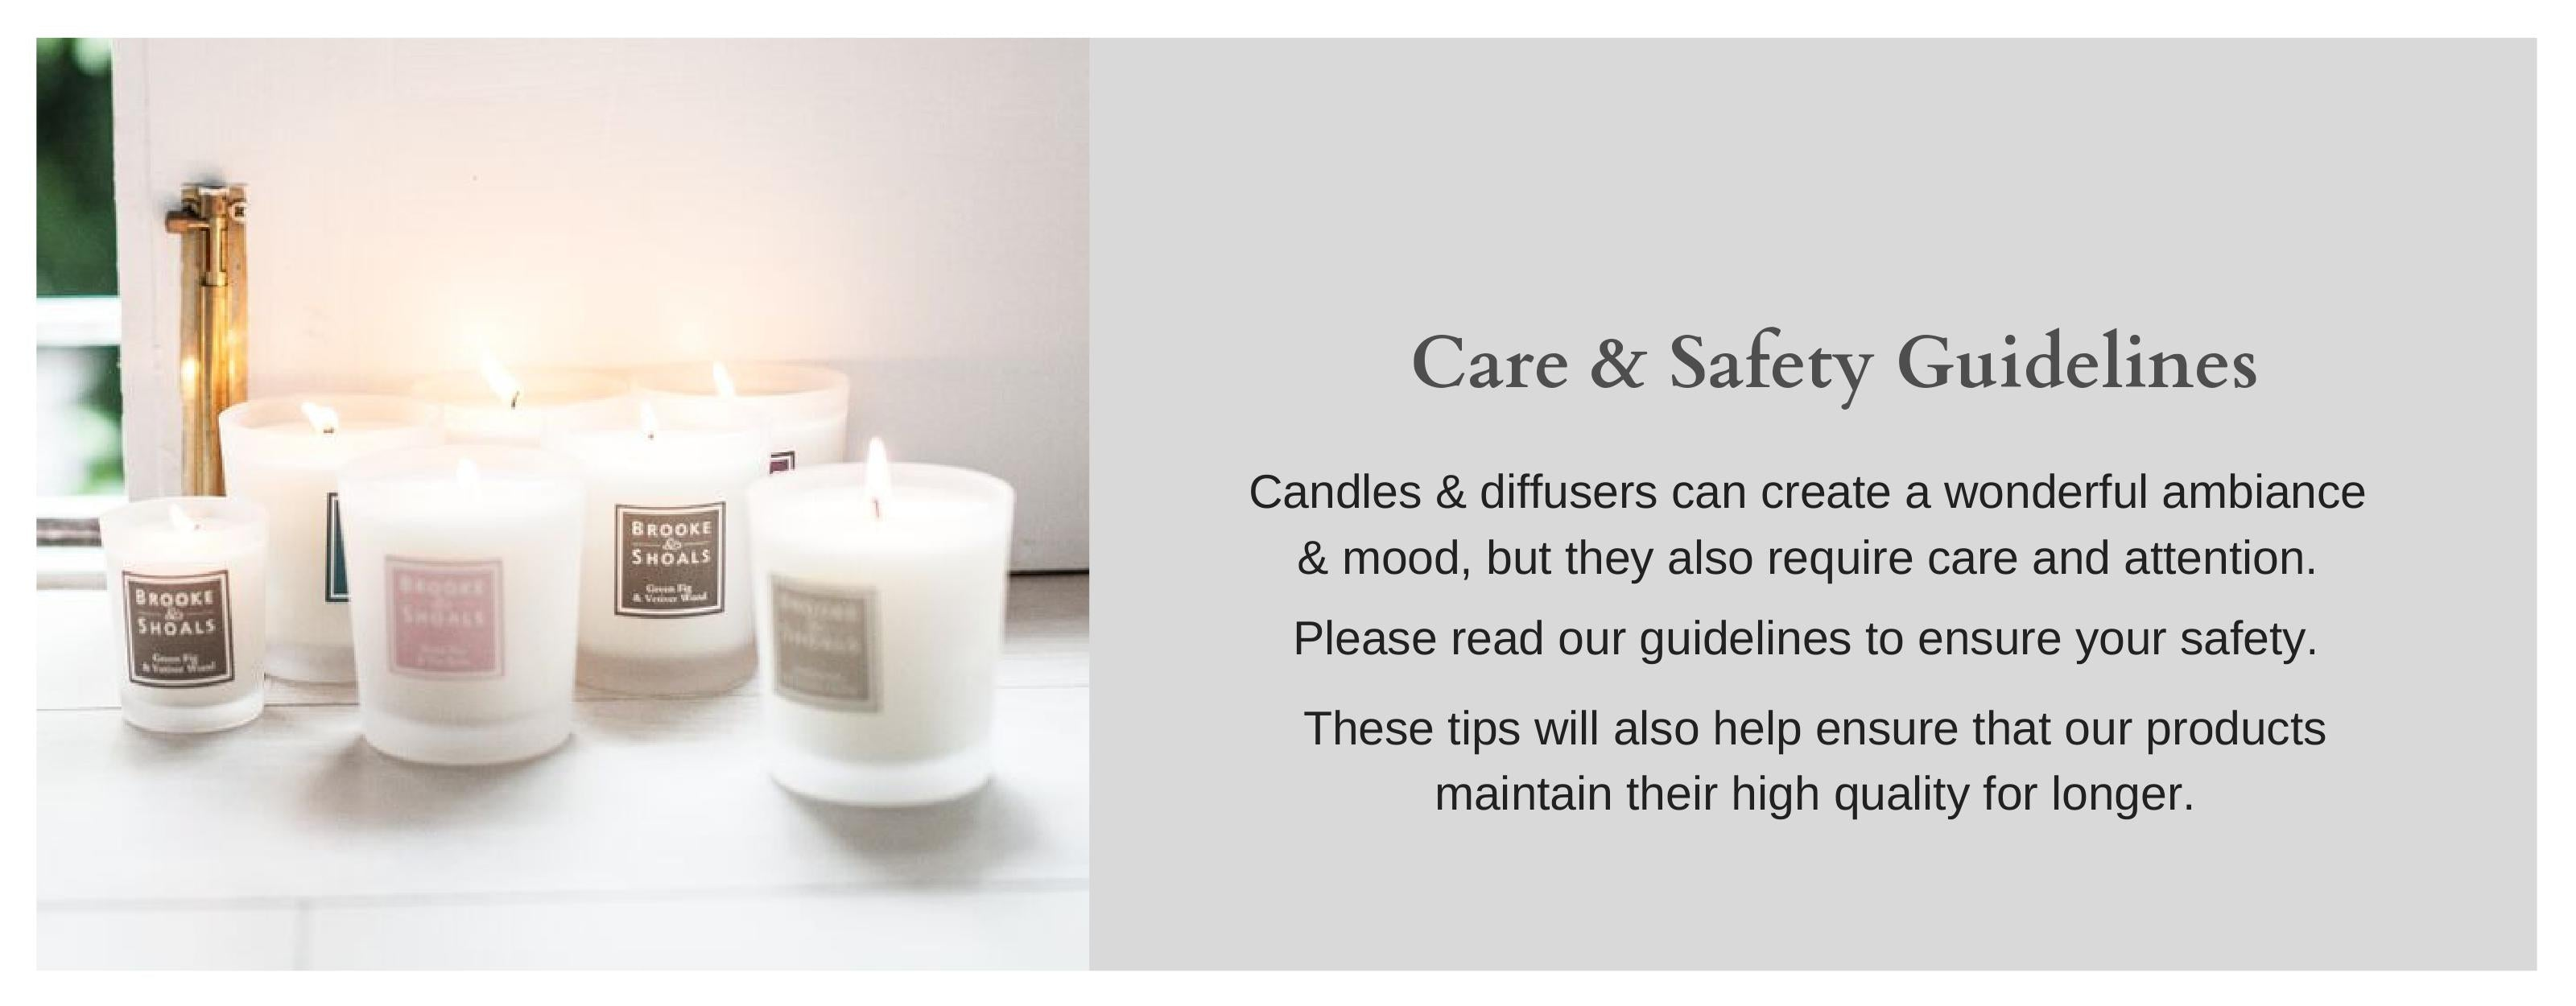 Scented Candle & Diffuser Safety - Brooke & Shoals Fragrances